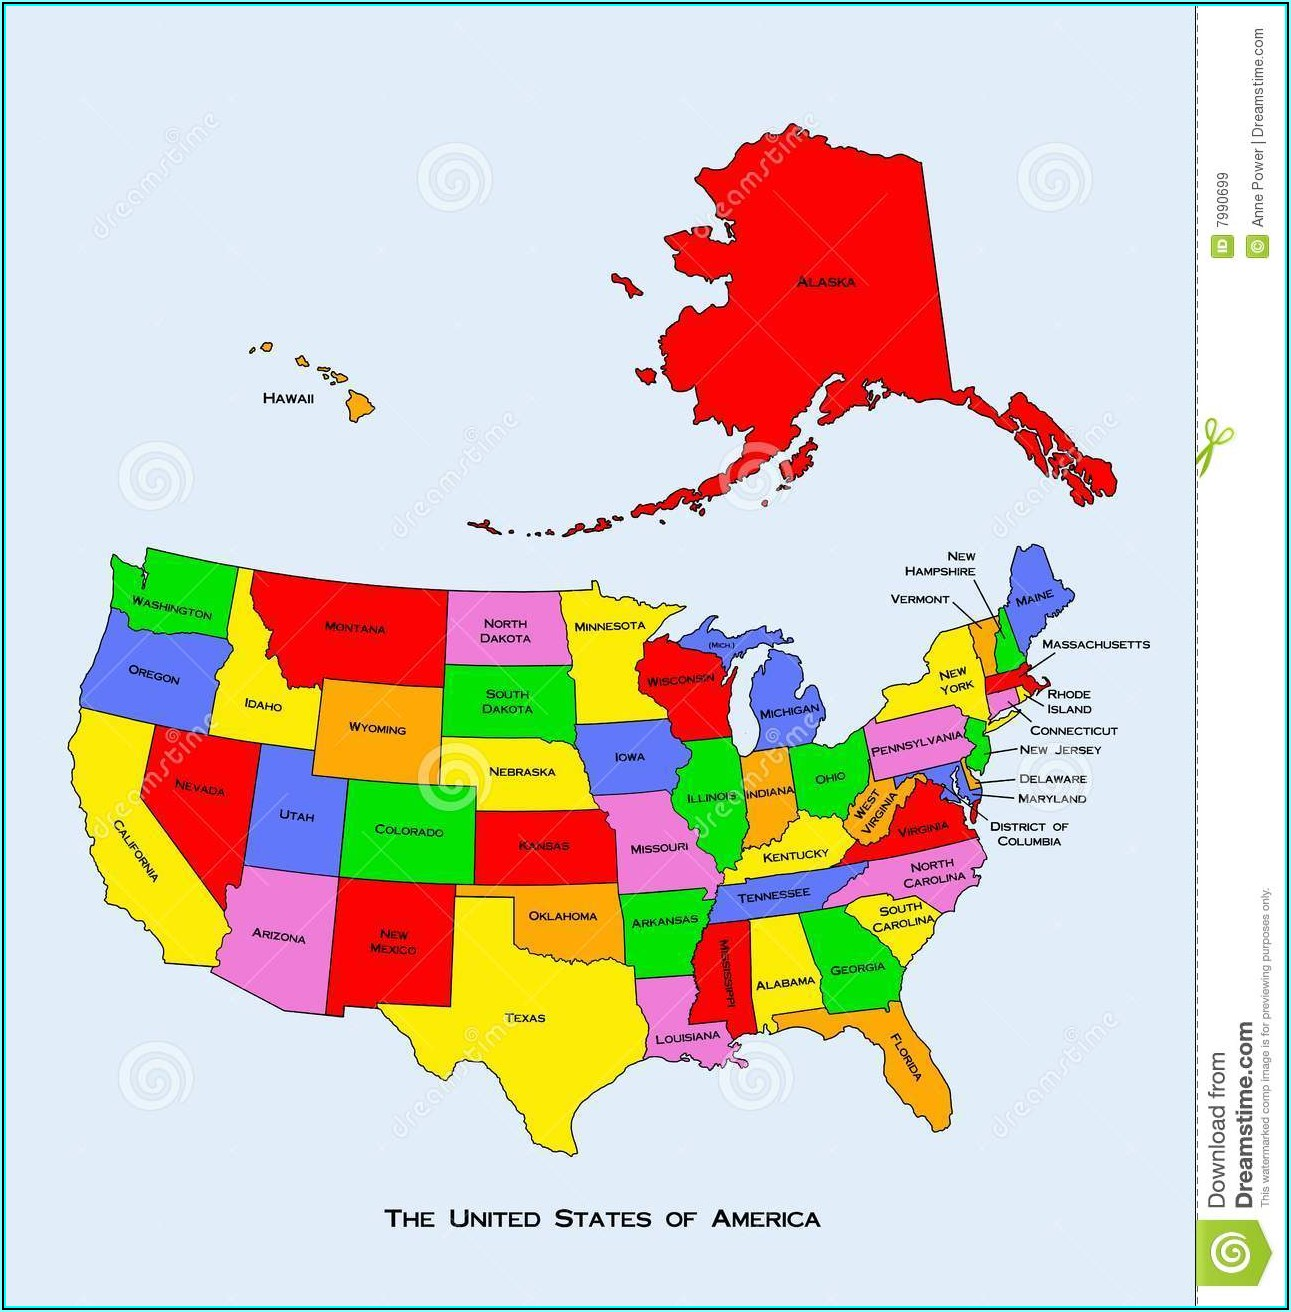 Geographical Map Of The United States Of America